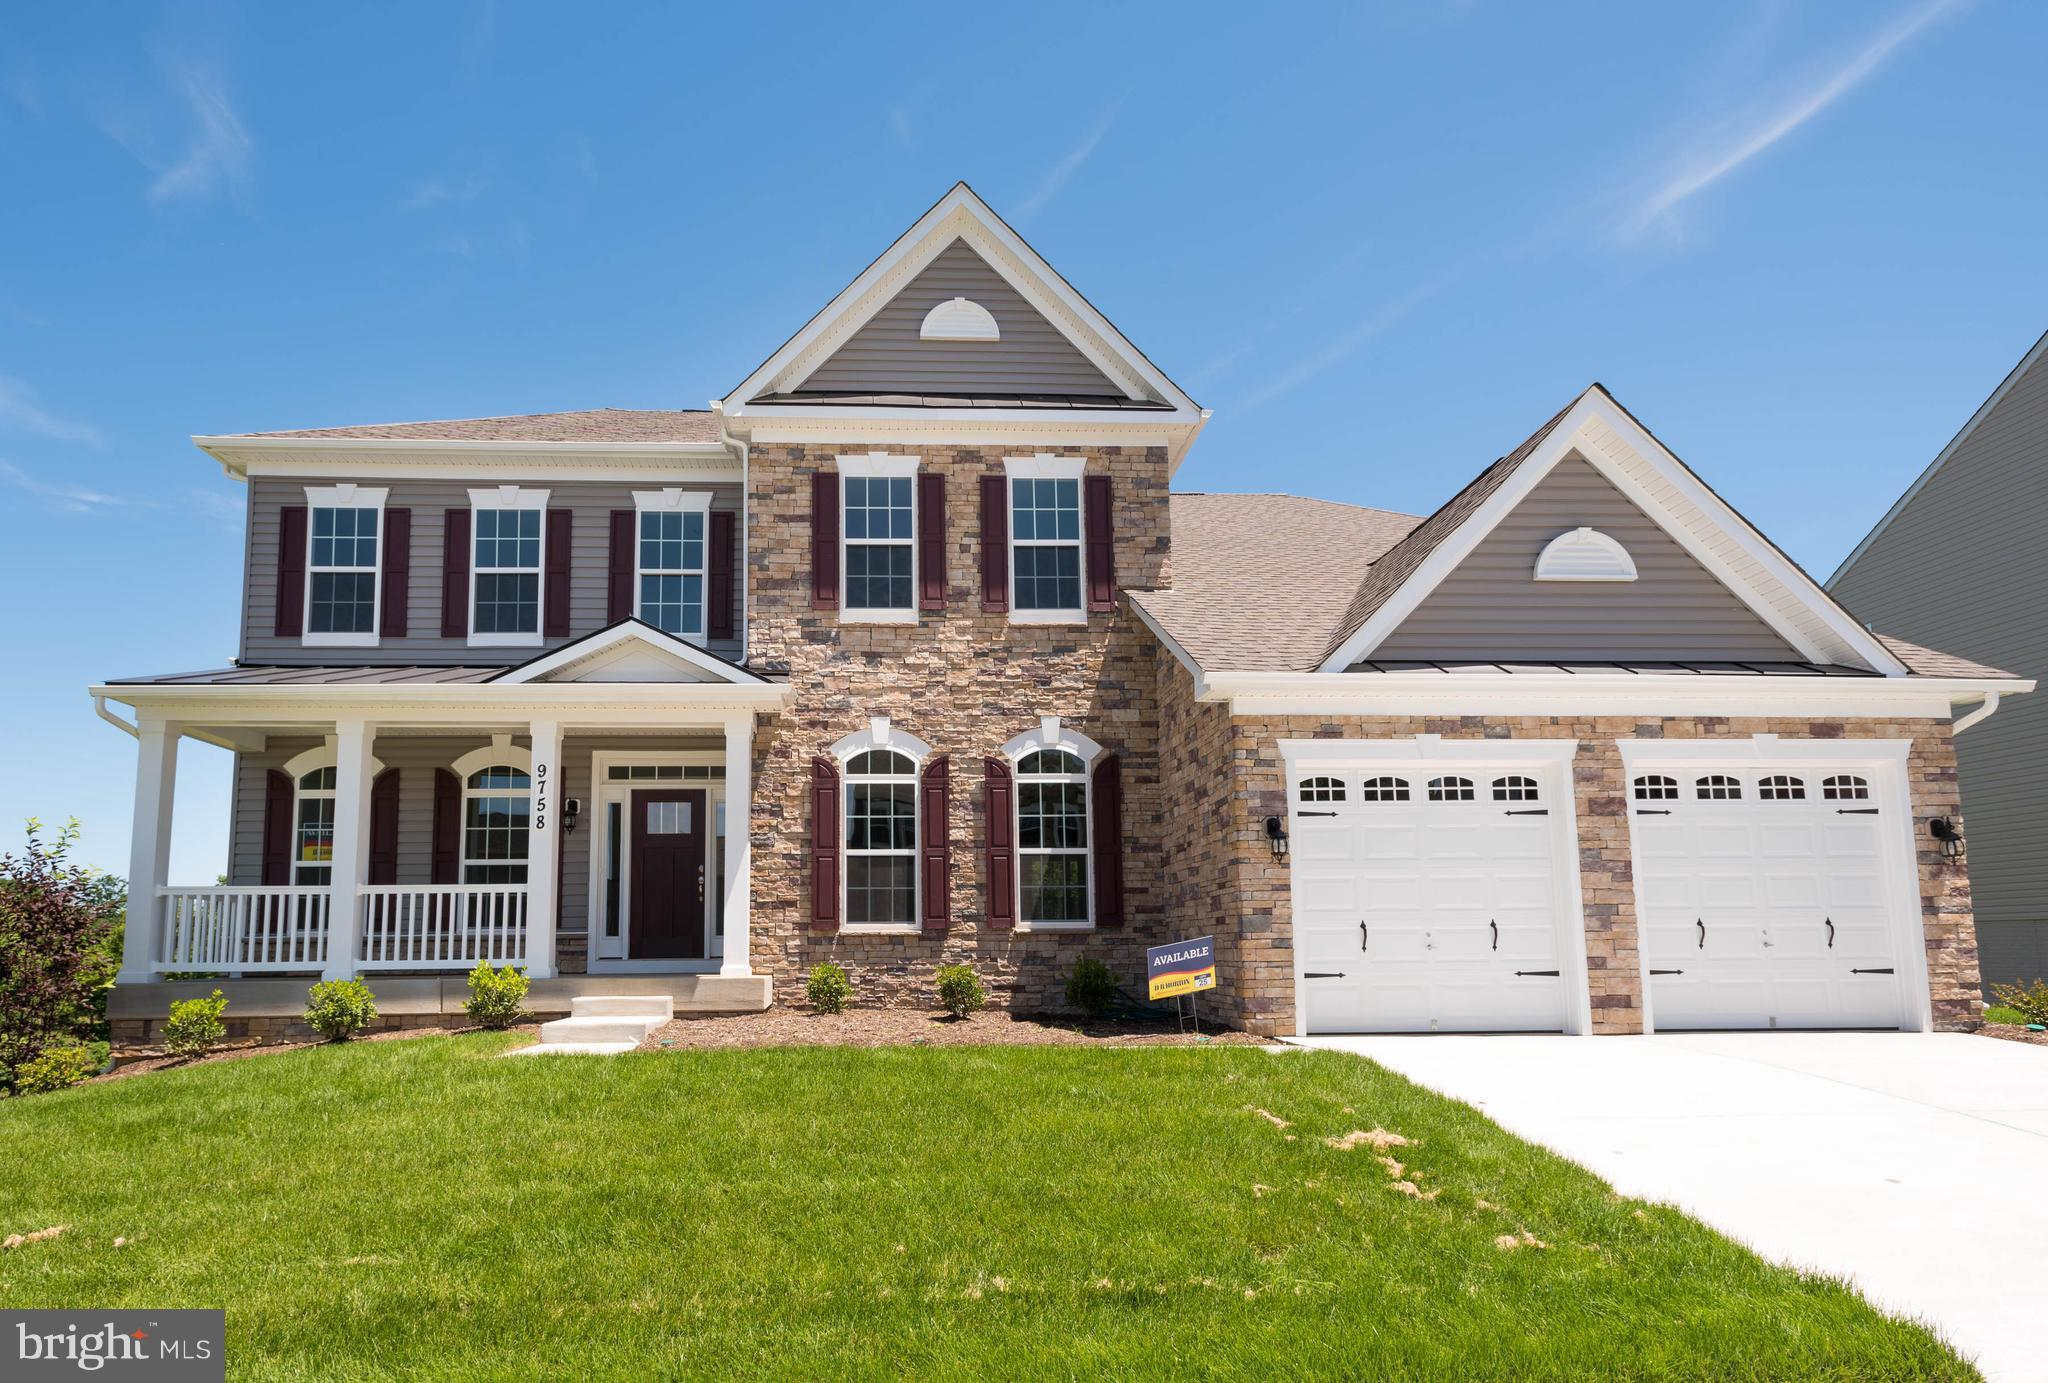 9758 POWDER HALL ROAD, PERRY HALL, MD 21128